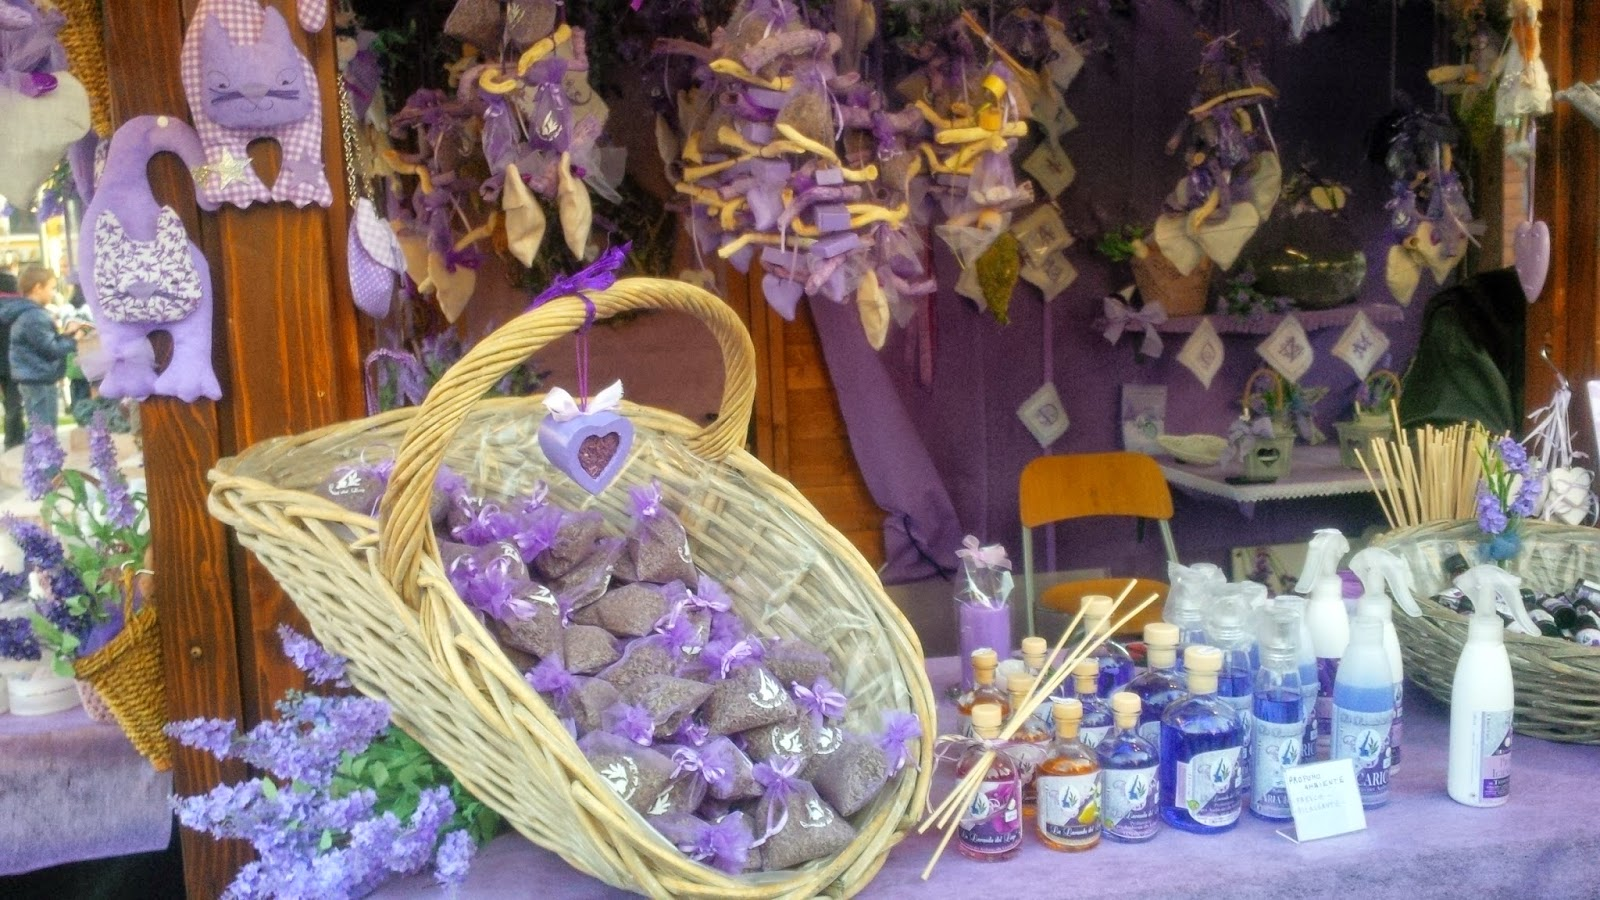 Lavender stall at the Christmas market in Asiago